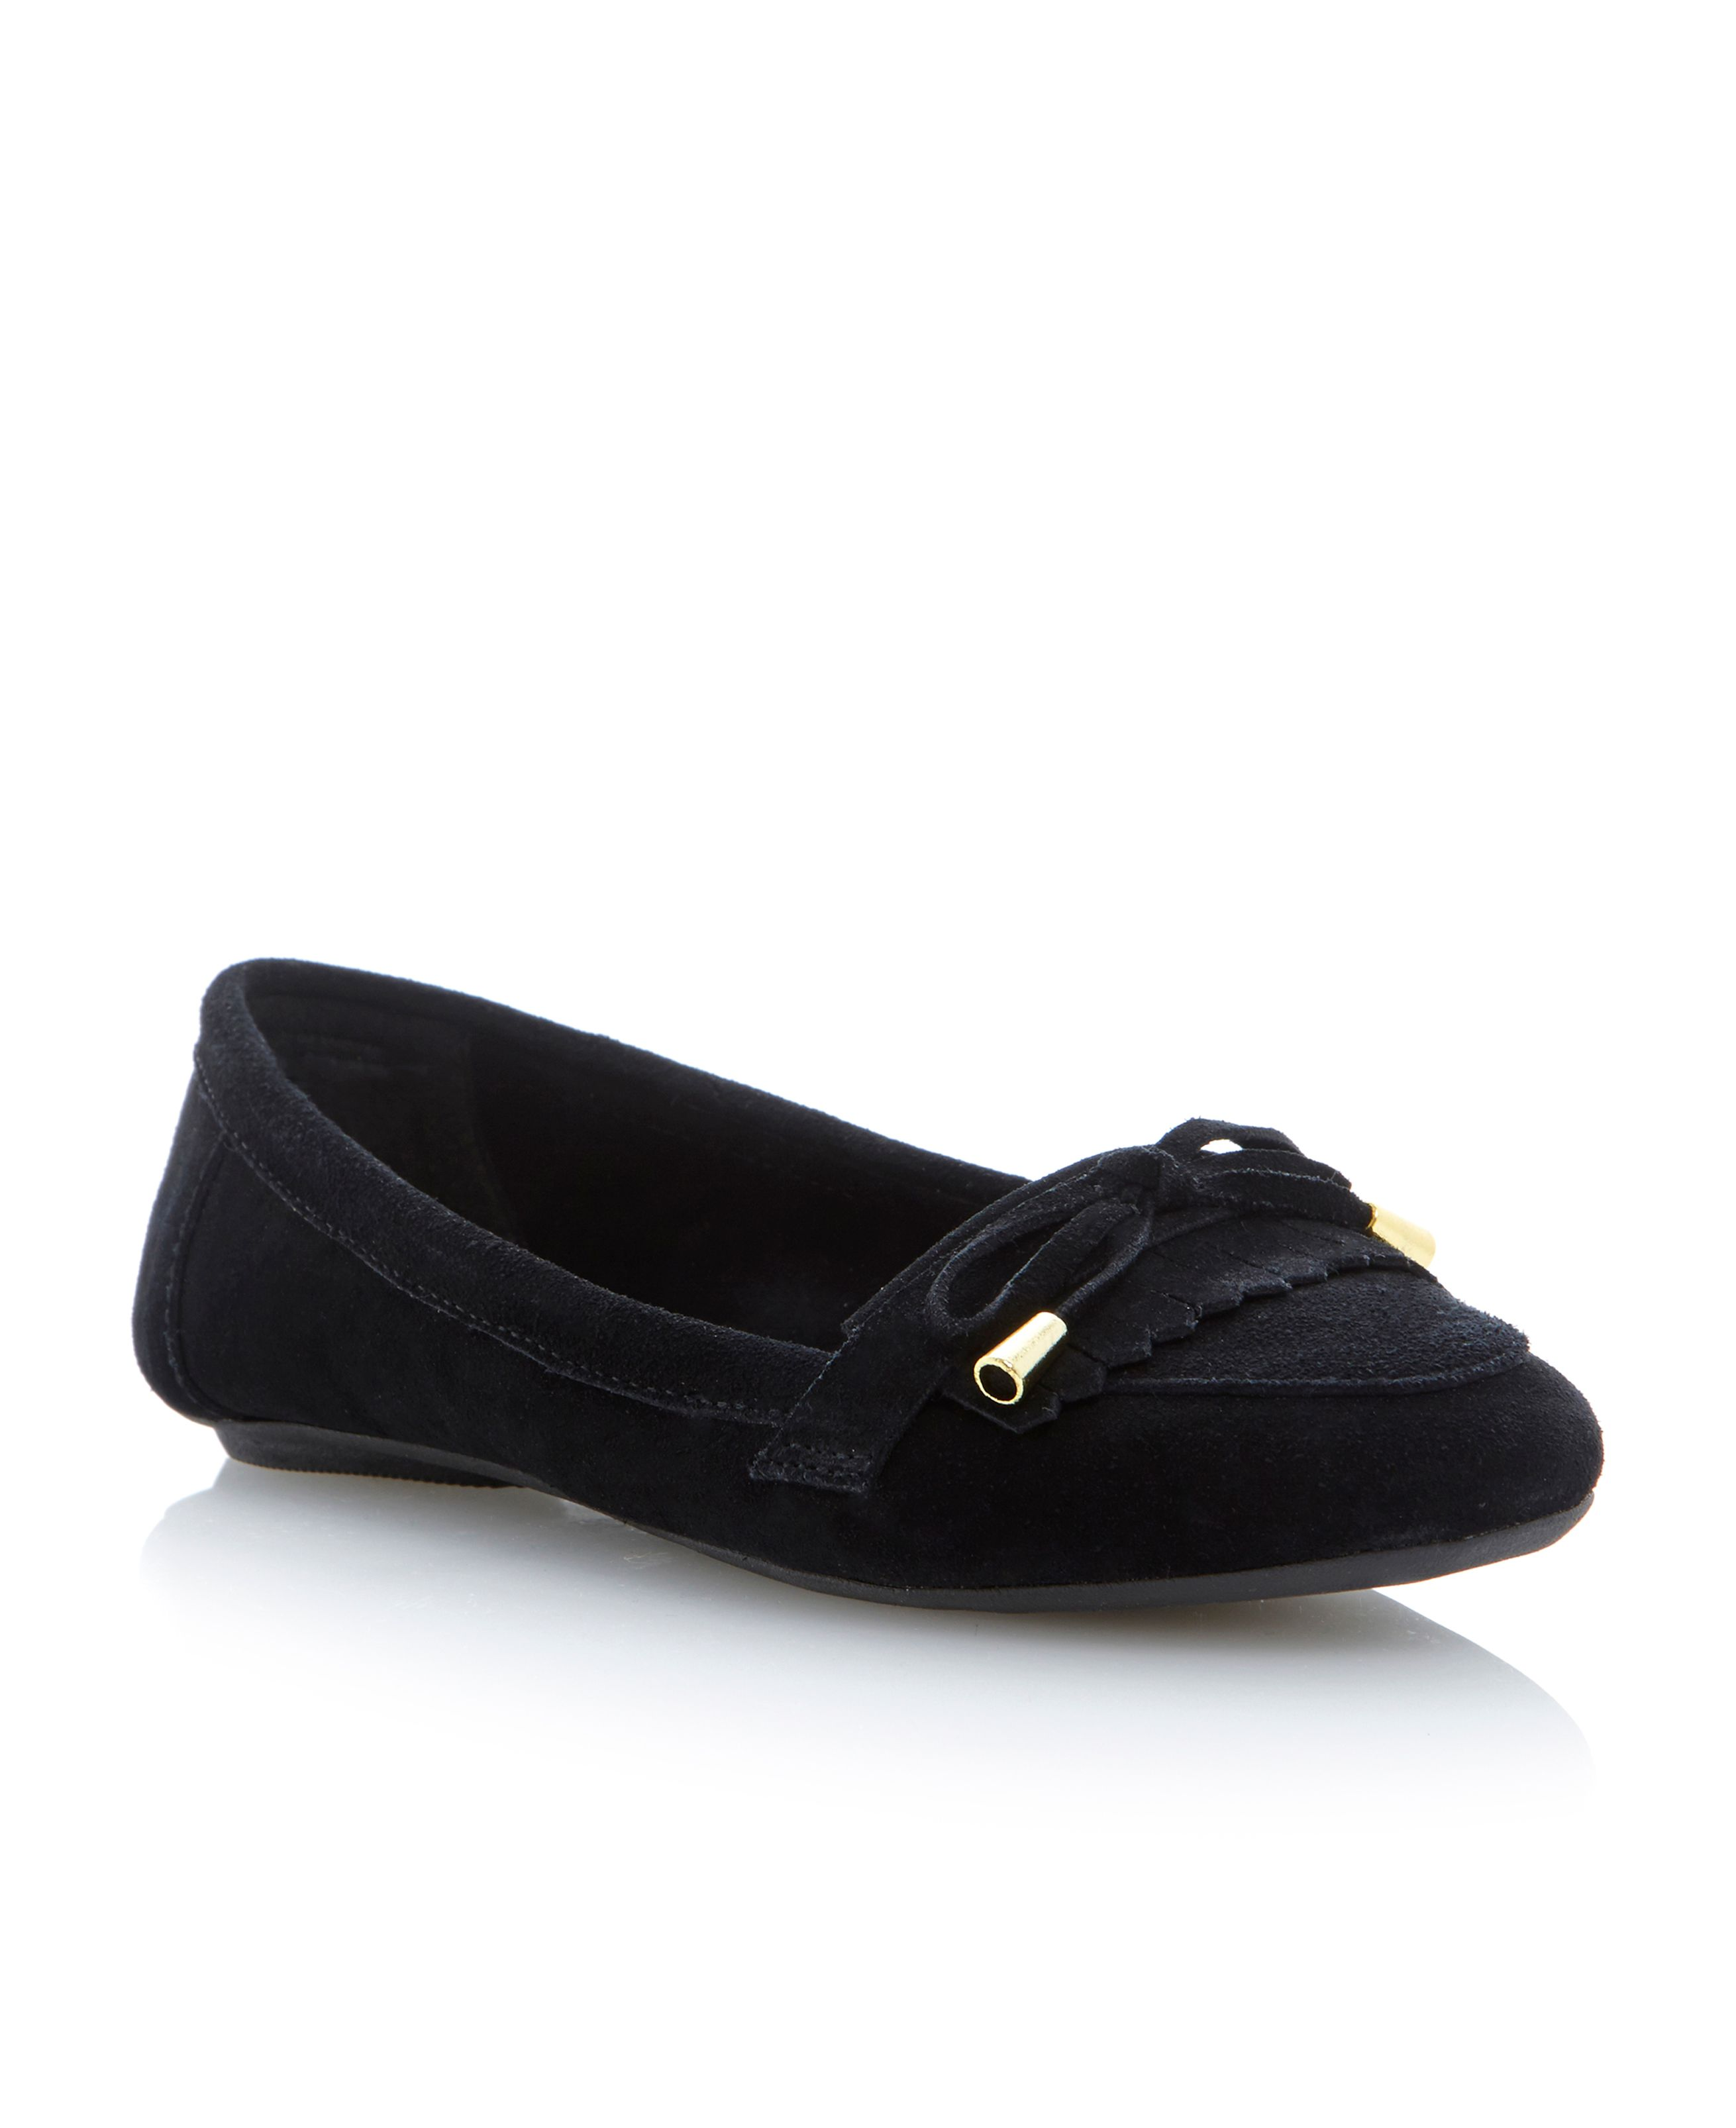 Lychees fringe and bow trim suede loafer shoes